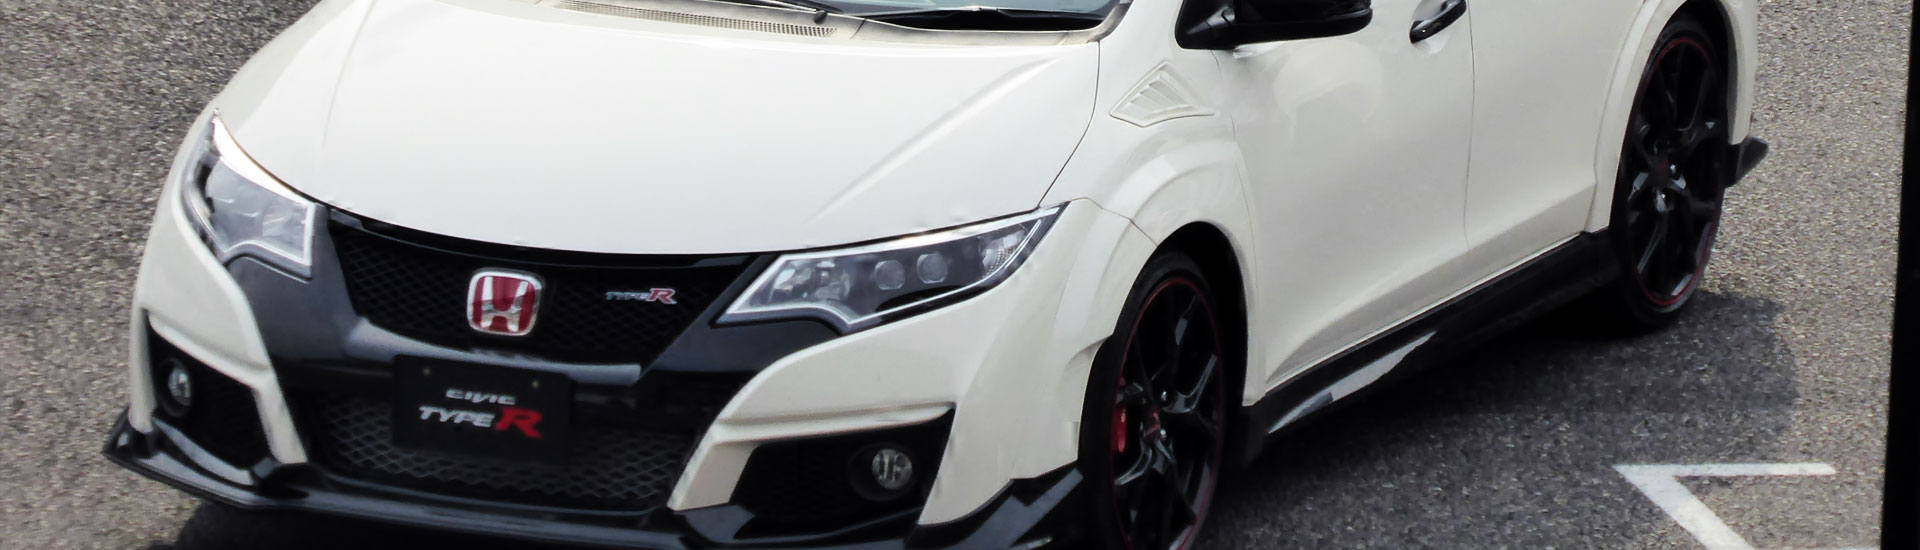 Honda Paint Protection Kits